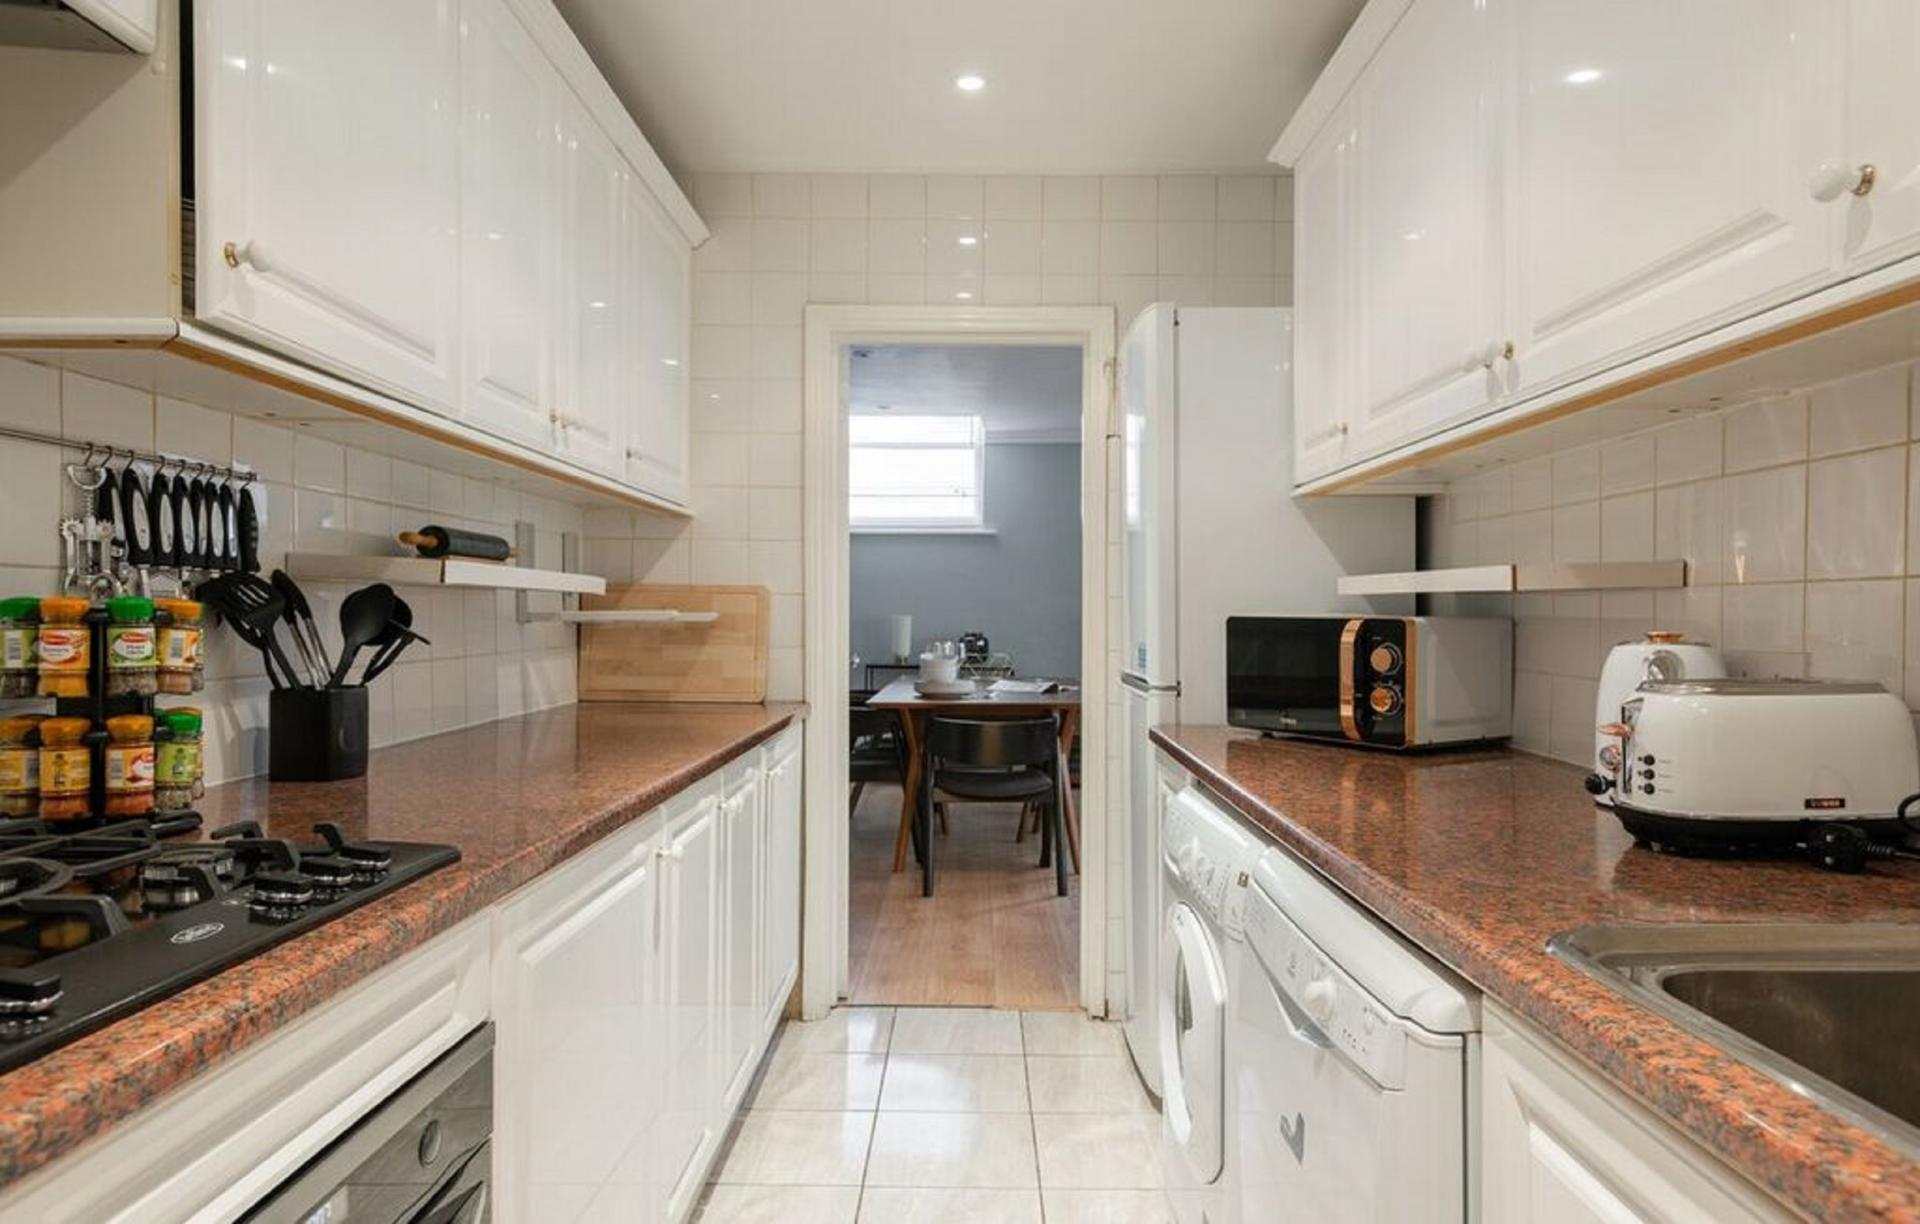 Fully equipped kitchen at The Kensington Palace Mews, Kensington, London - Citybase Apartments